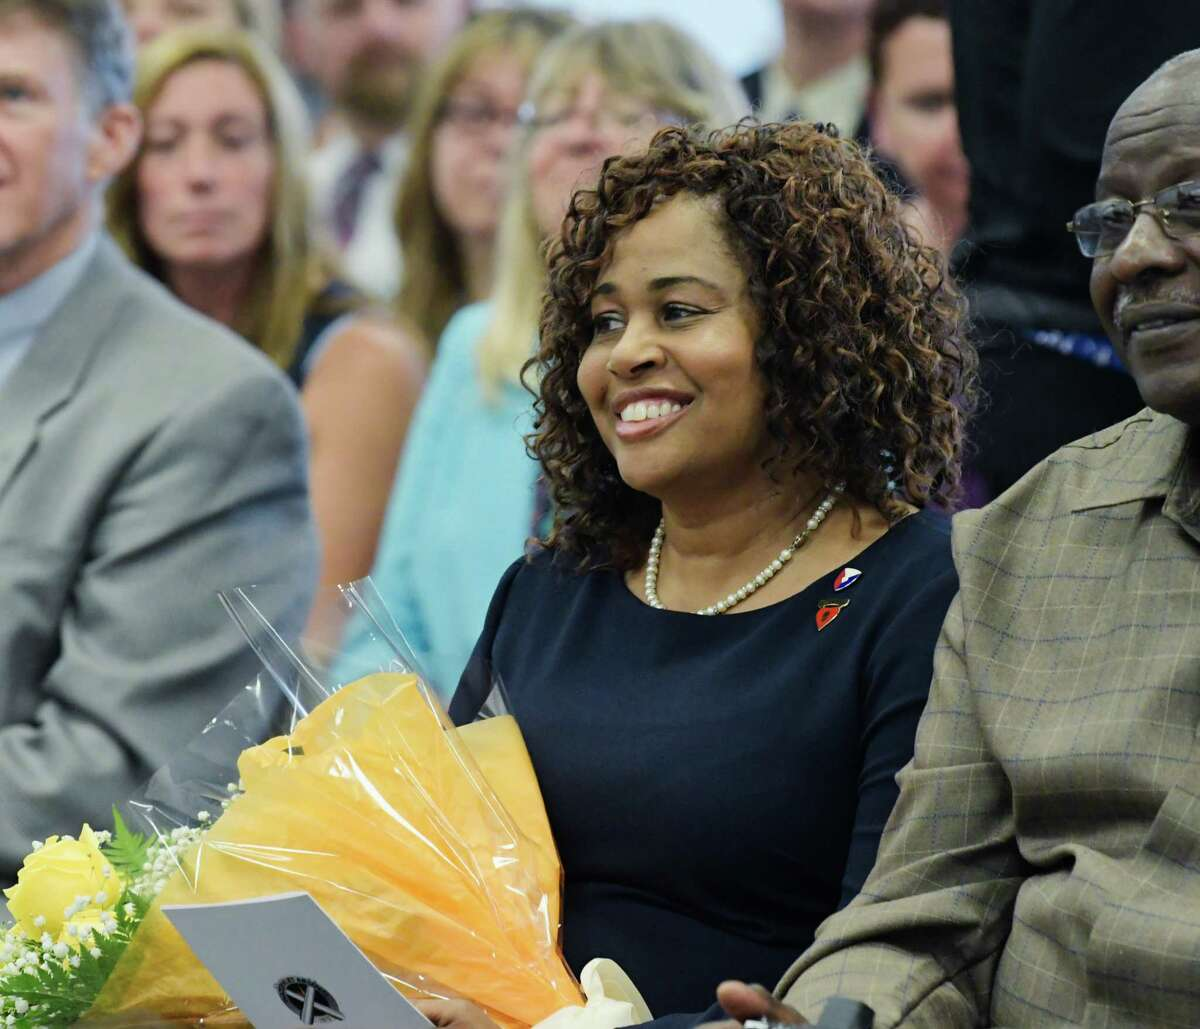 Romona Kelly, the wife of new Watervliet Arsenal commander, Colonel Milton Kelly, at a ceremony at the Watervliet Arsenal on Tuesday, Aug. 21, 2018, in Watervliet, N.Y. (Paul Buckowski/Times Union)